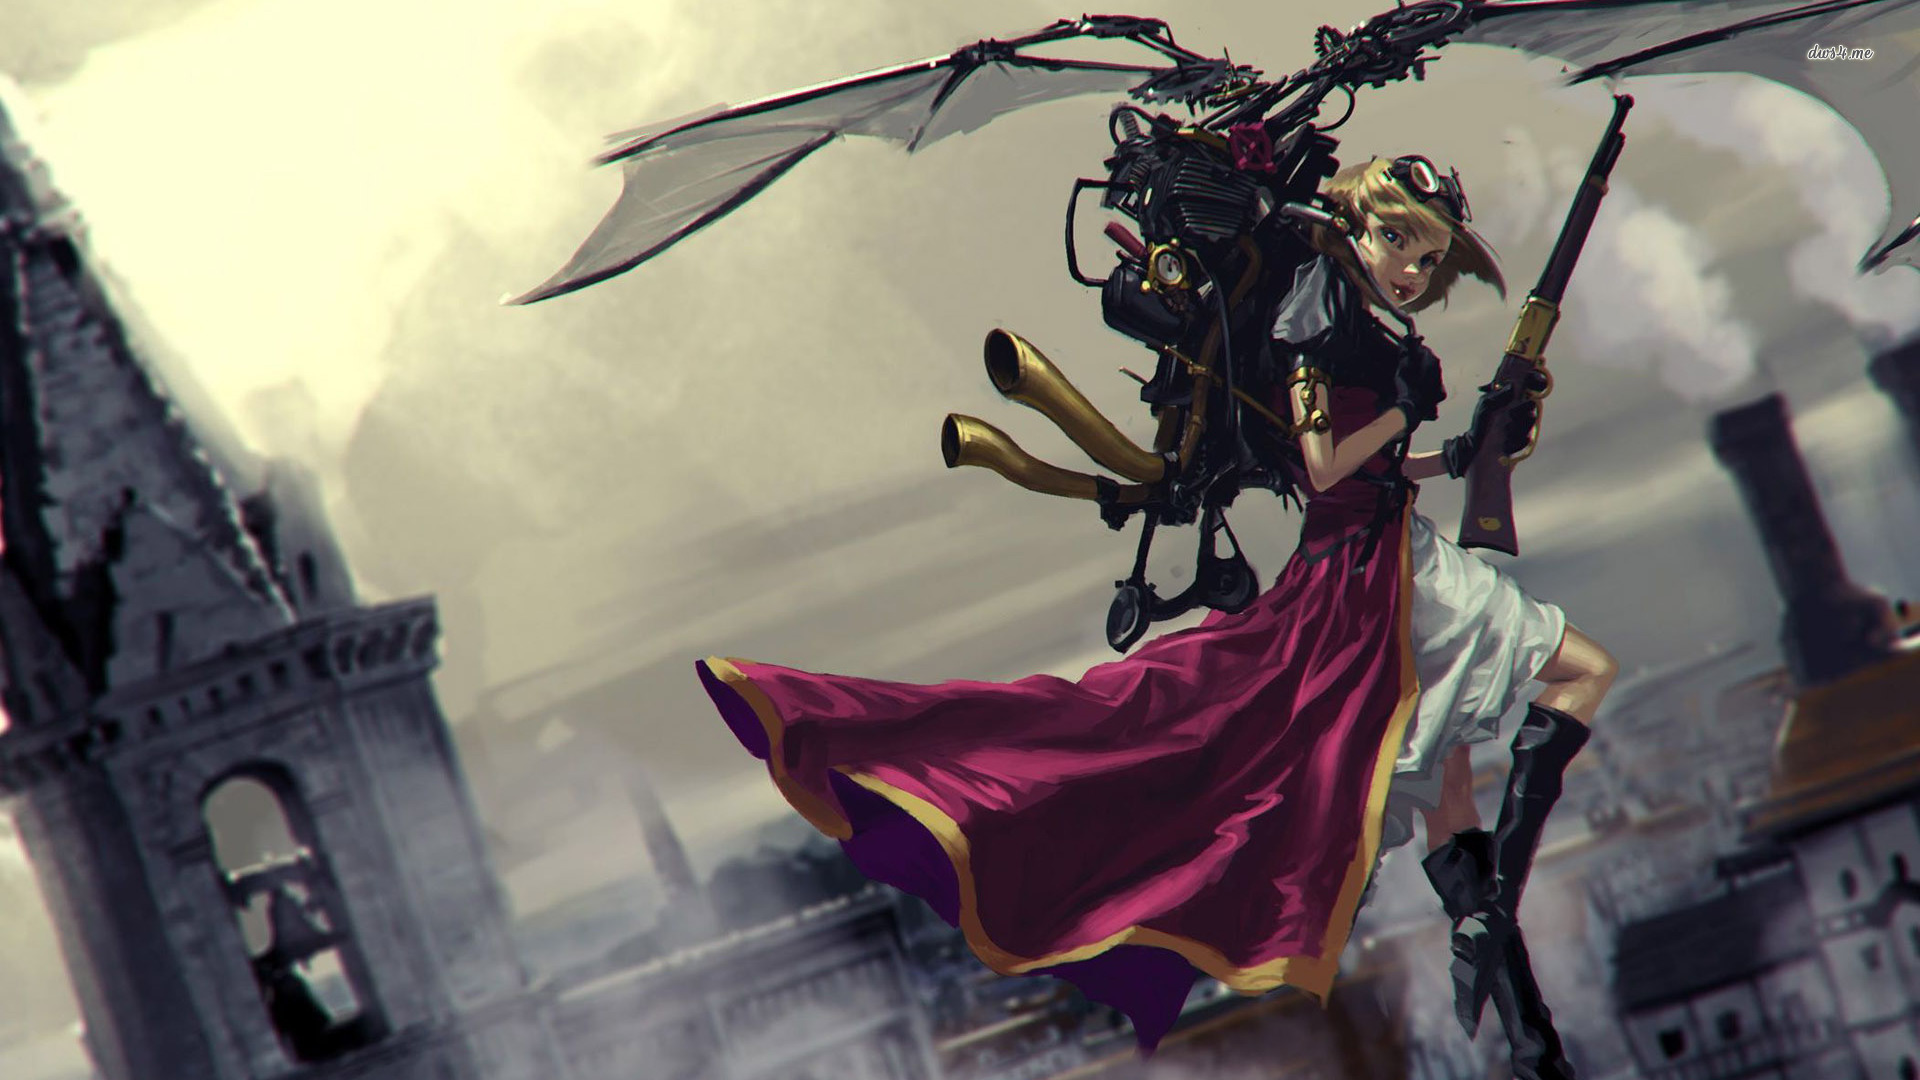 wallpaper 23660 girl steampunk jetpack 1920x1080 fantasy wallpaperjpg 1920x1080